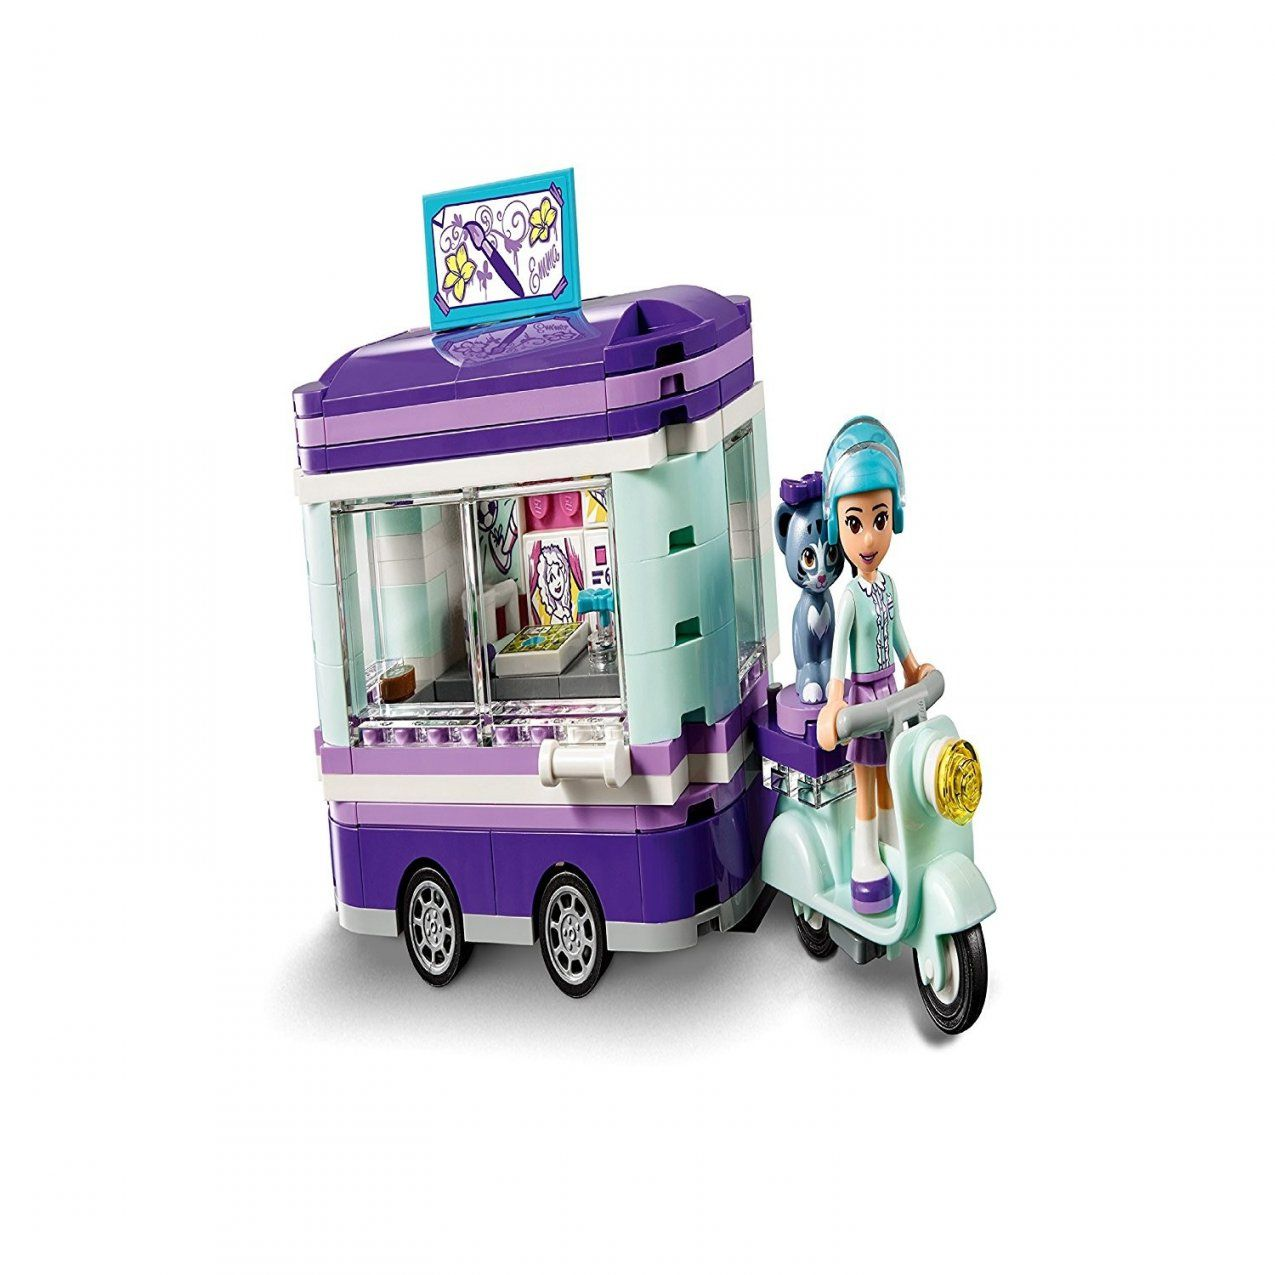 Lego Friends Bettwäsche Lego Friends Bettwäsche Haus Design Ideen